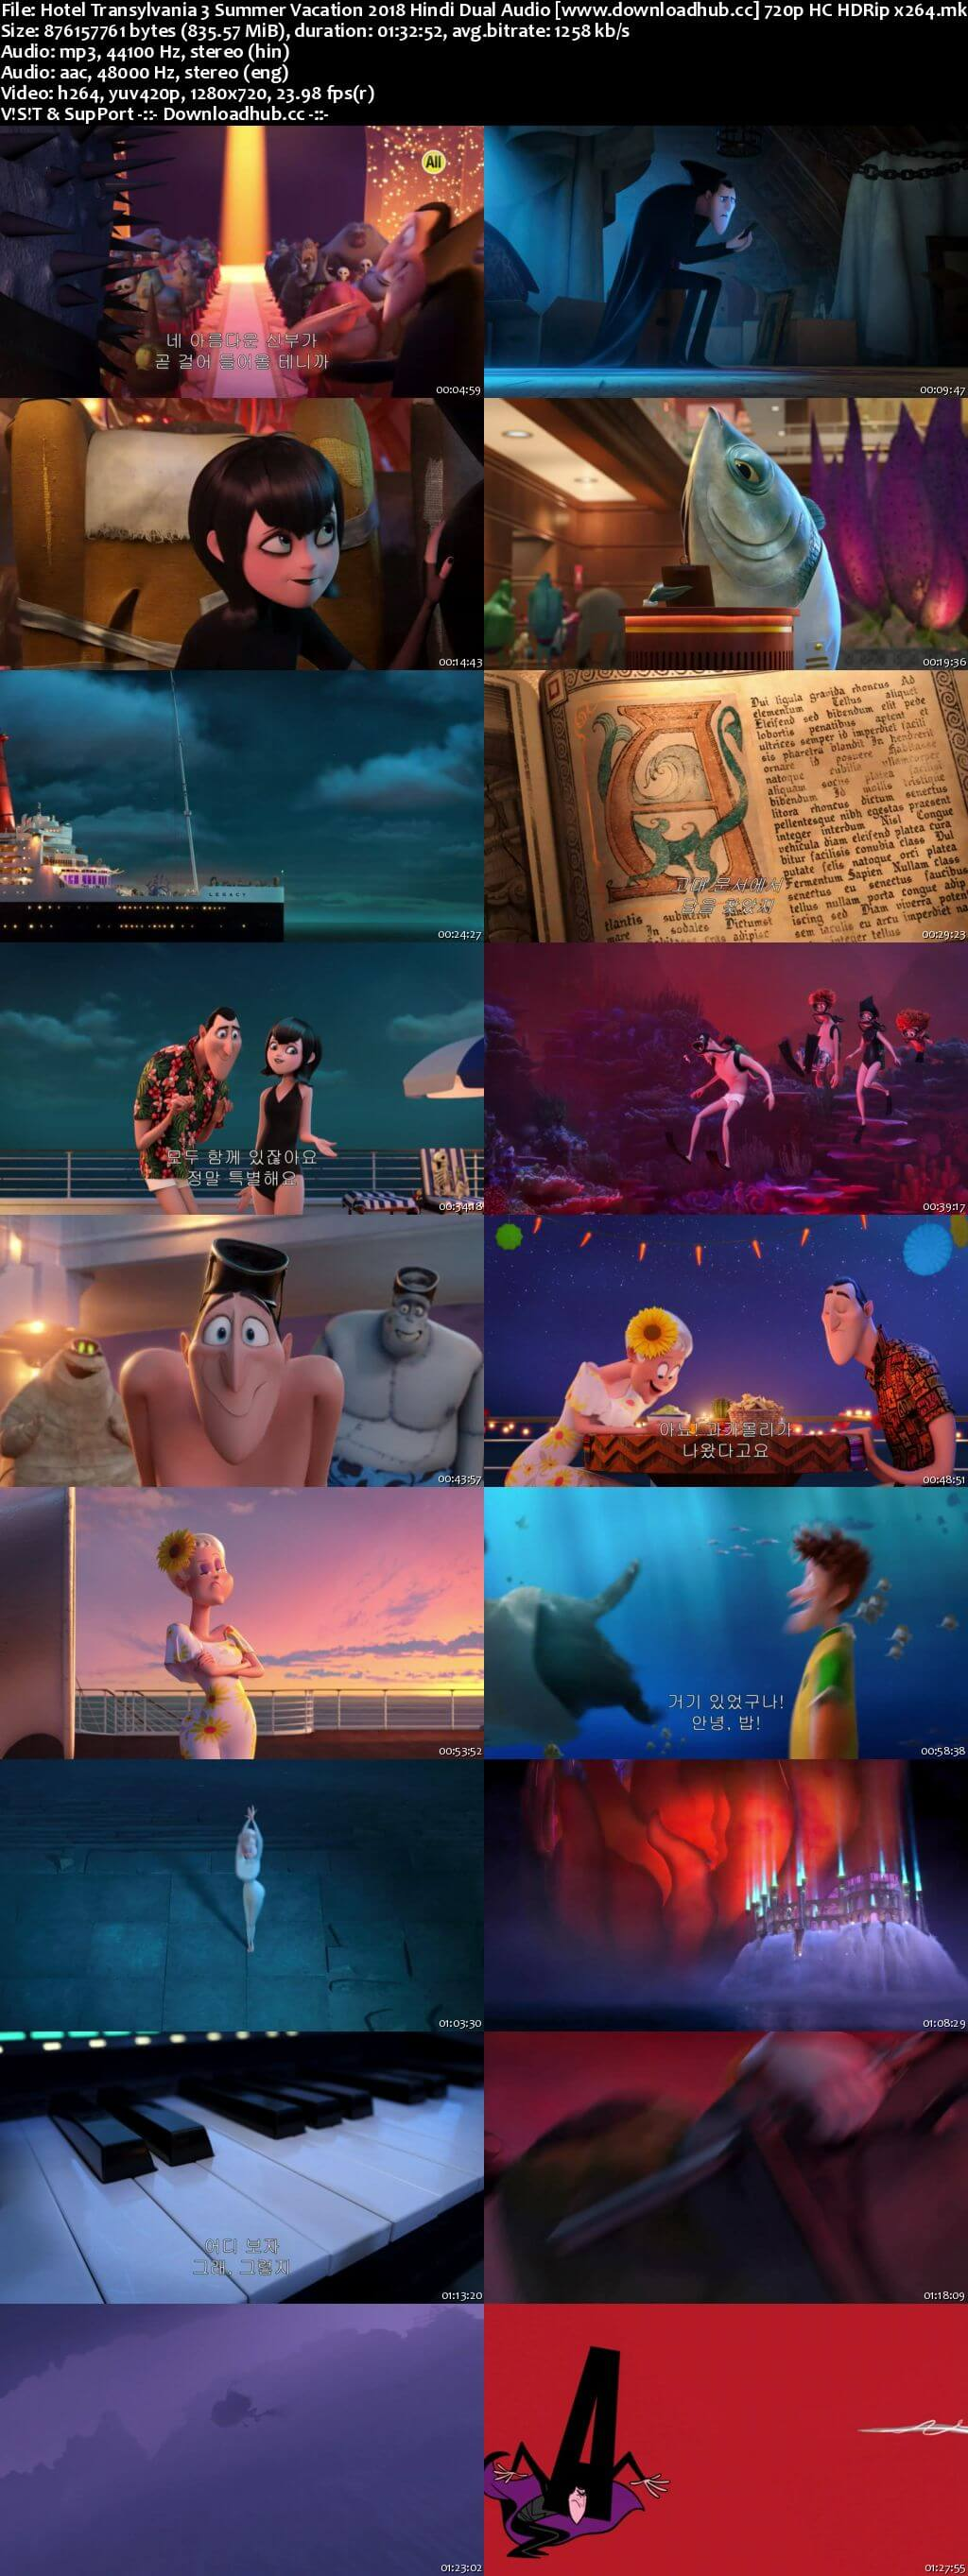 Hotel Transylvania 3 Summer Vacation 2018 Hindi Dual Audio 720p HC HDRip x264